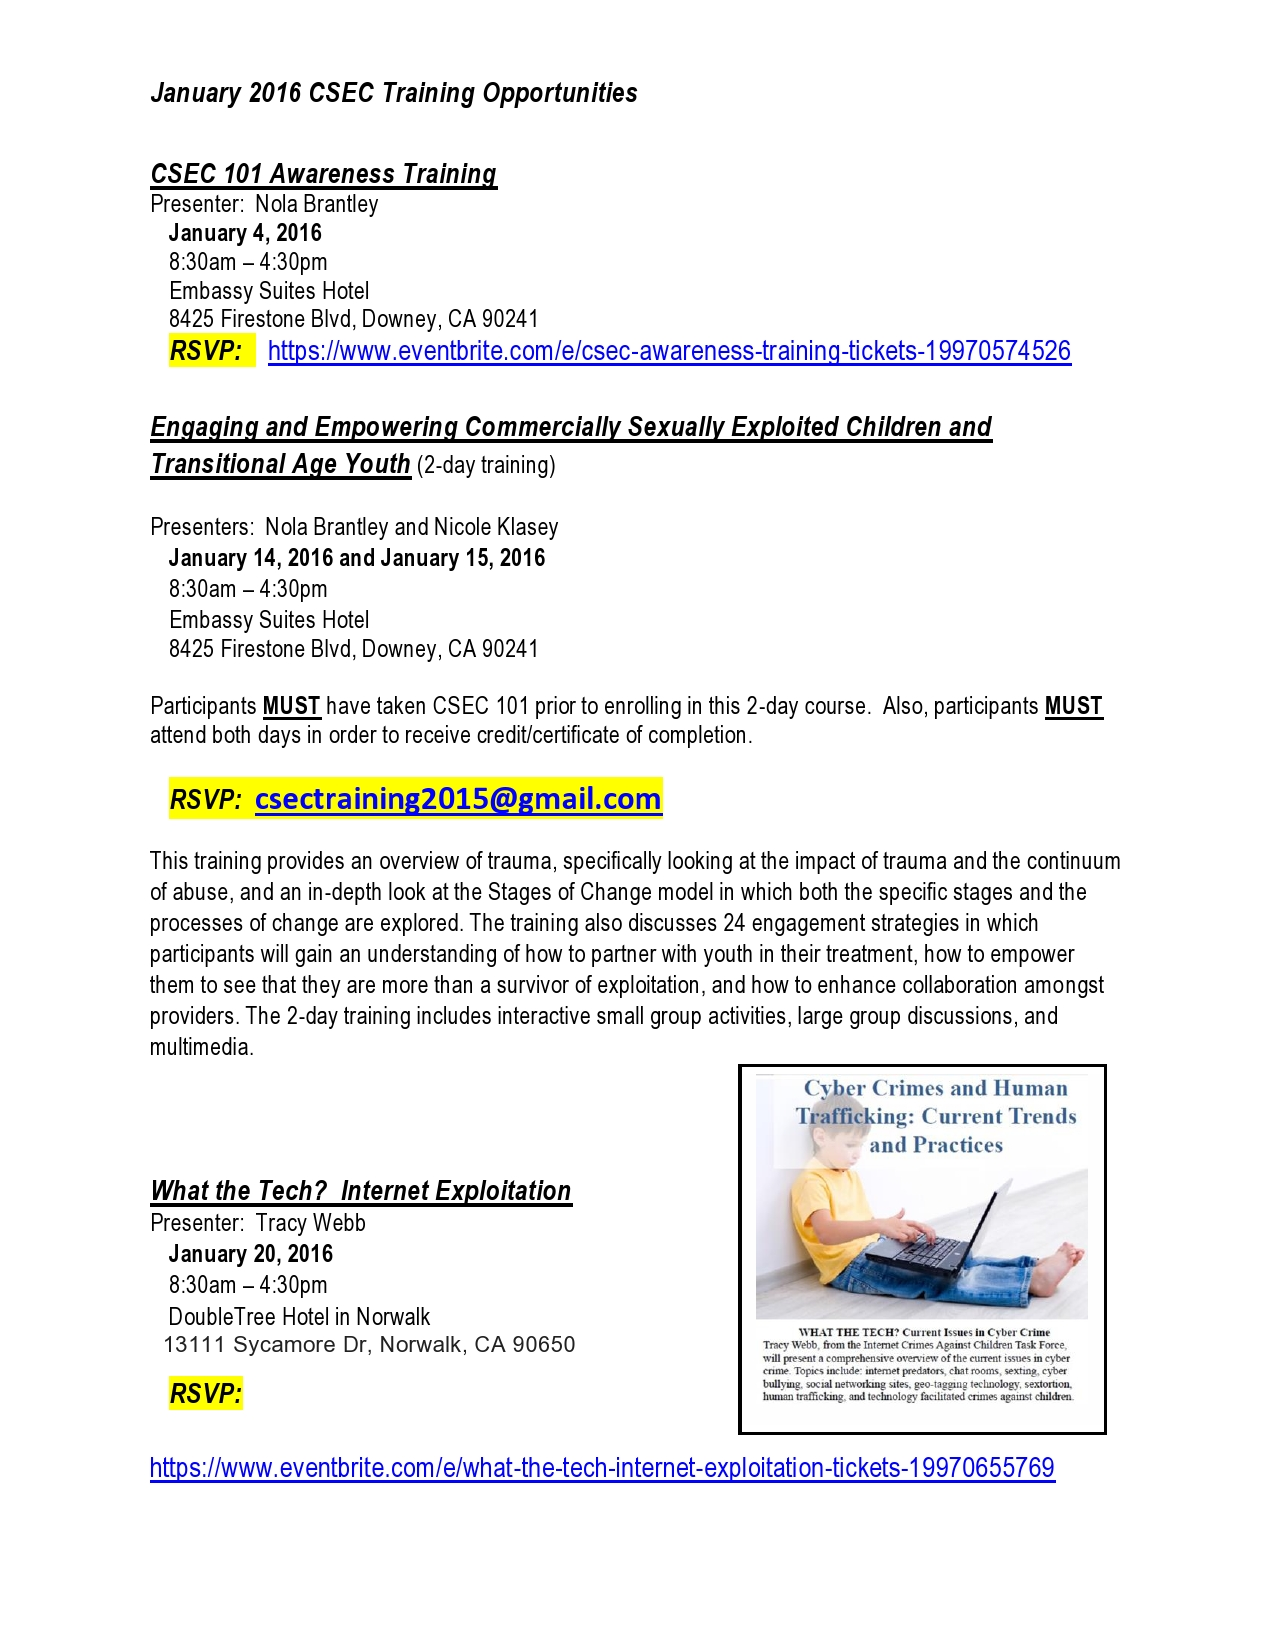 JANUARY CSEC TRAINING OPPORTUNITIES-page0001